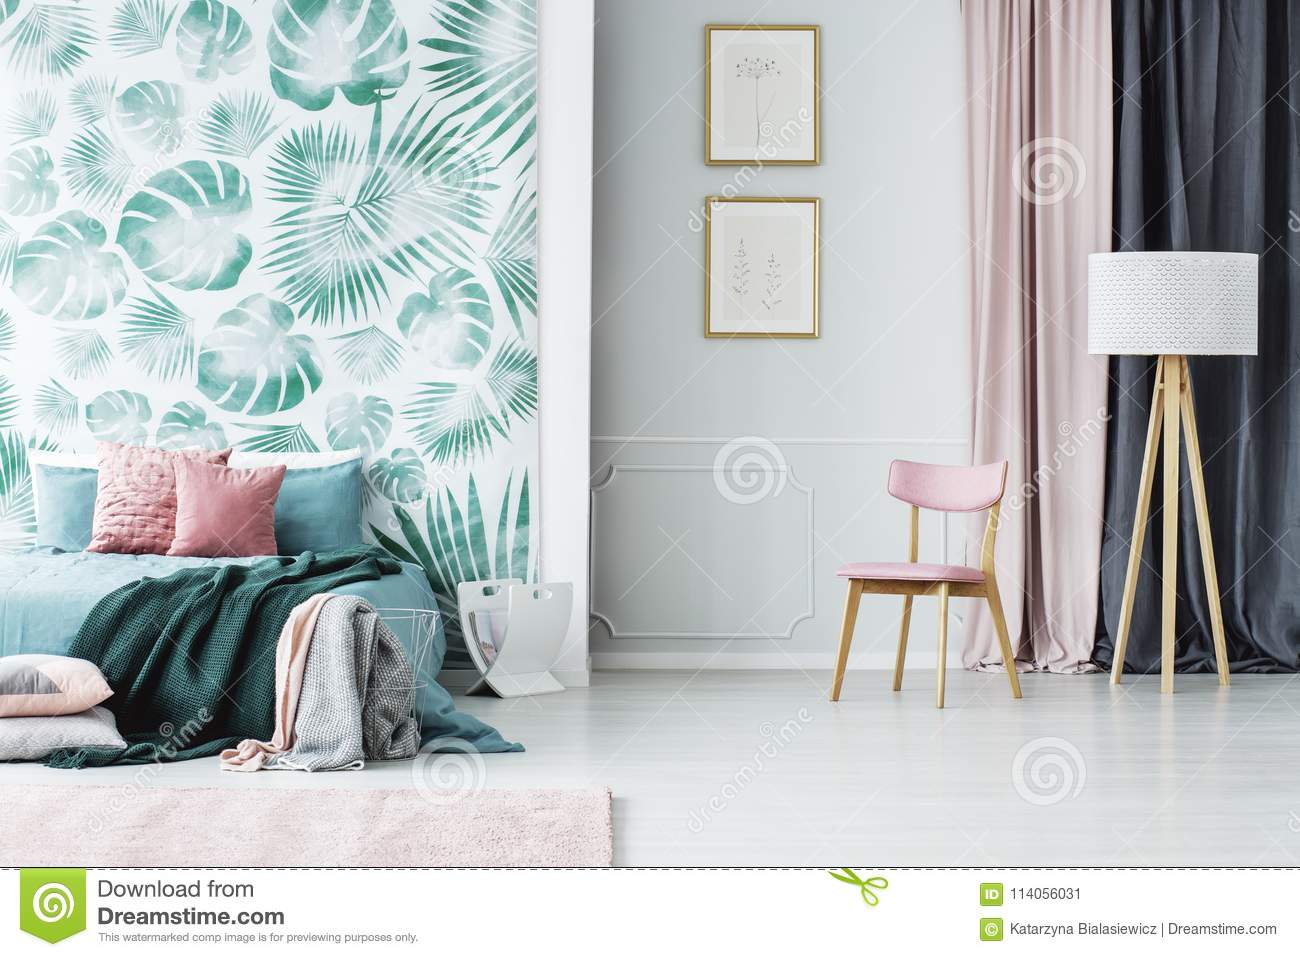 Pink And Green Bedroom Interior Stock Image - Image of bedroom ...